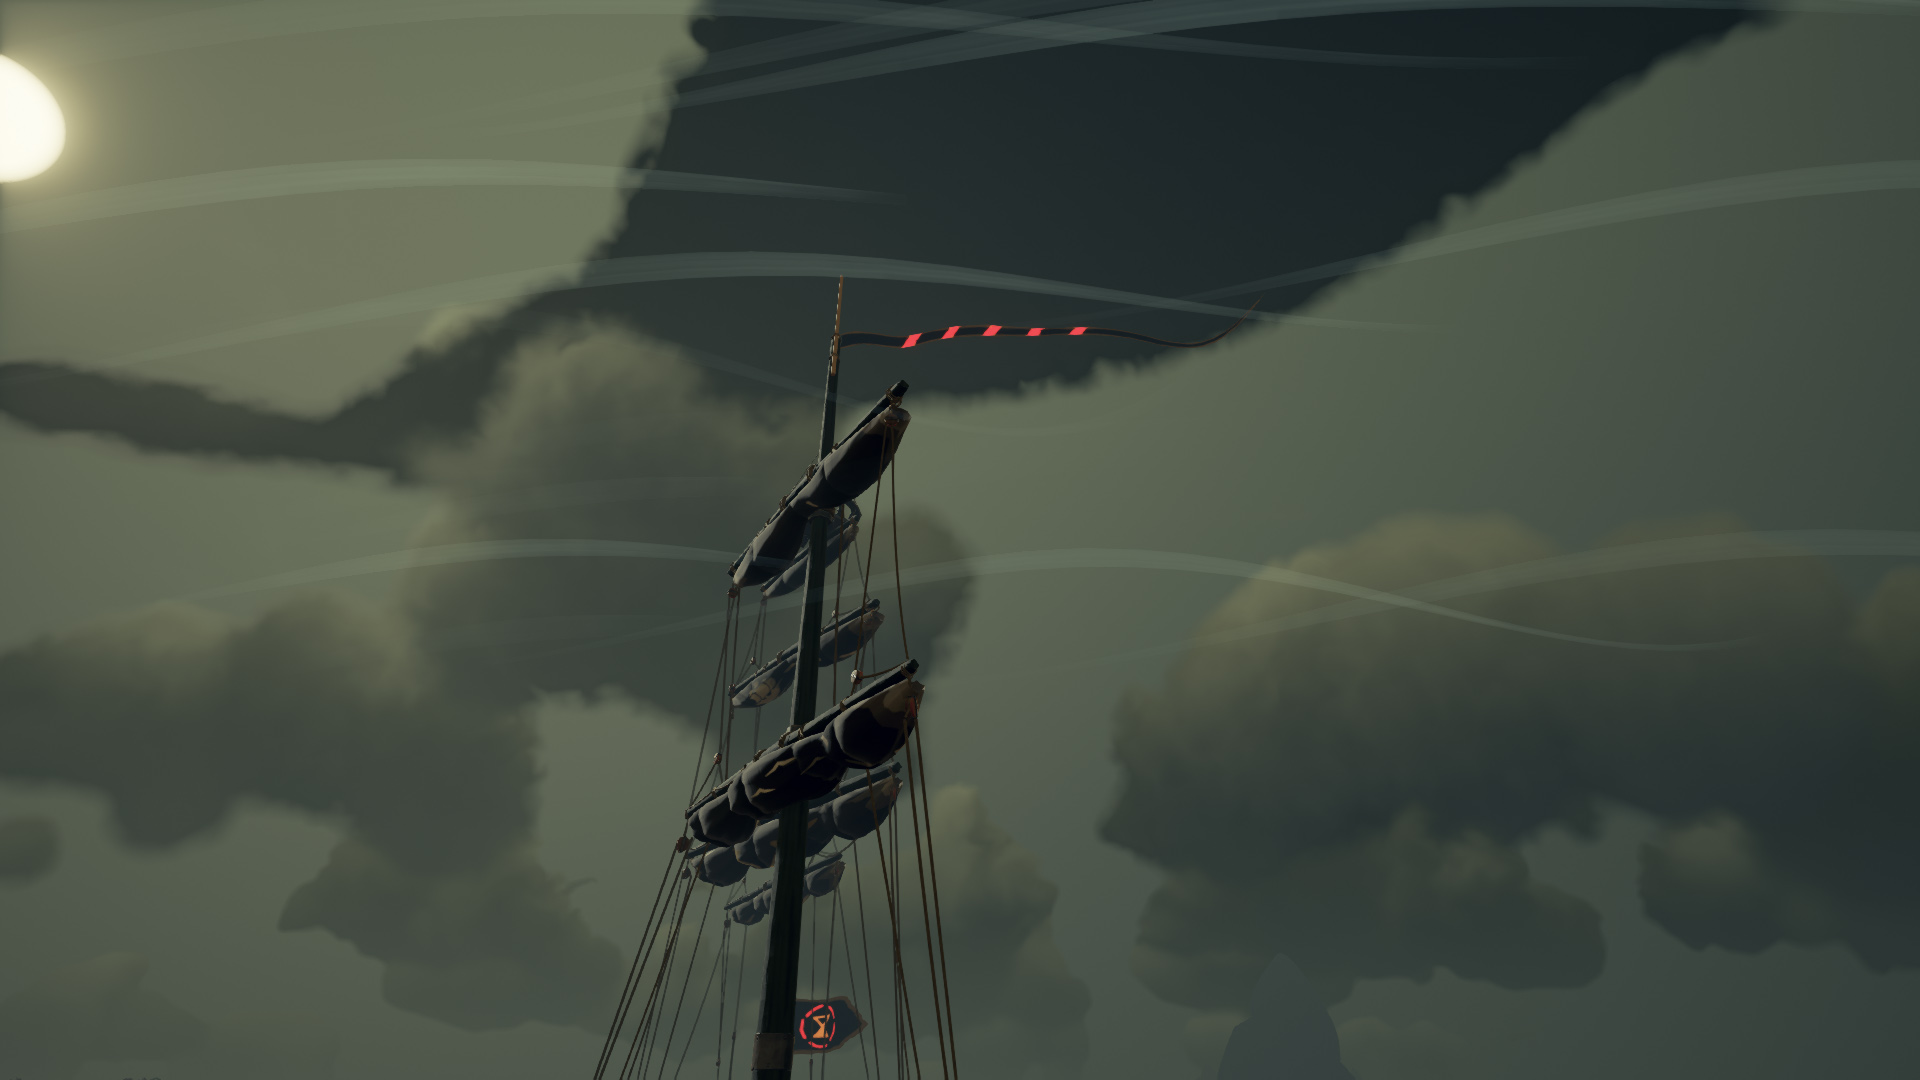 Sea of Thieves Reaper's Bones Grade 5 Emissary flag